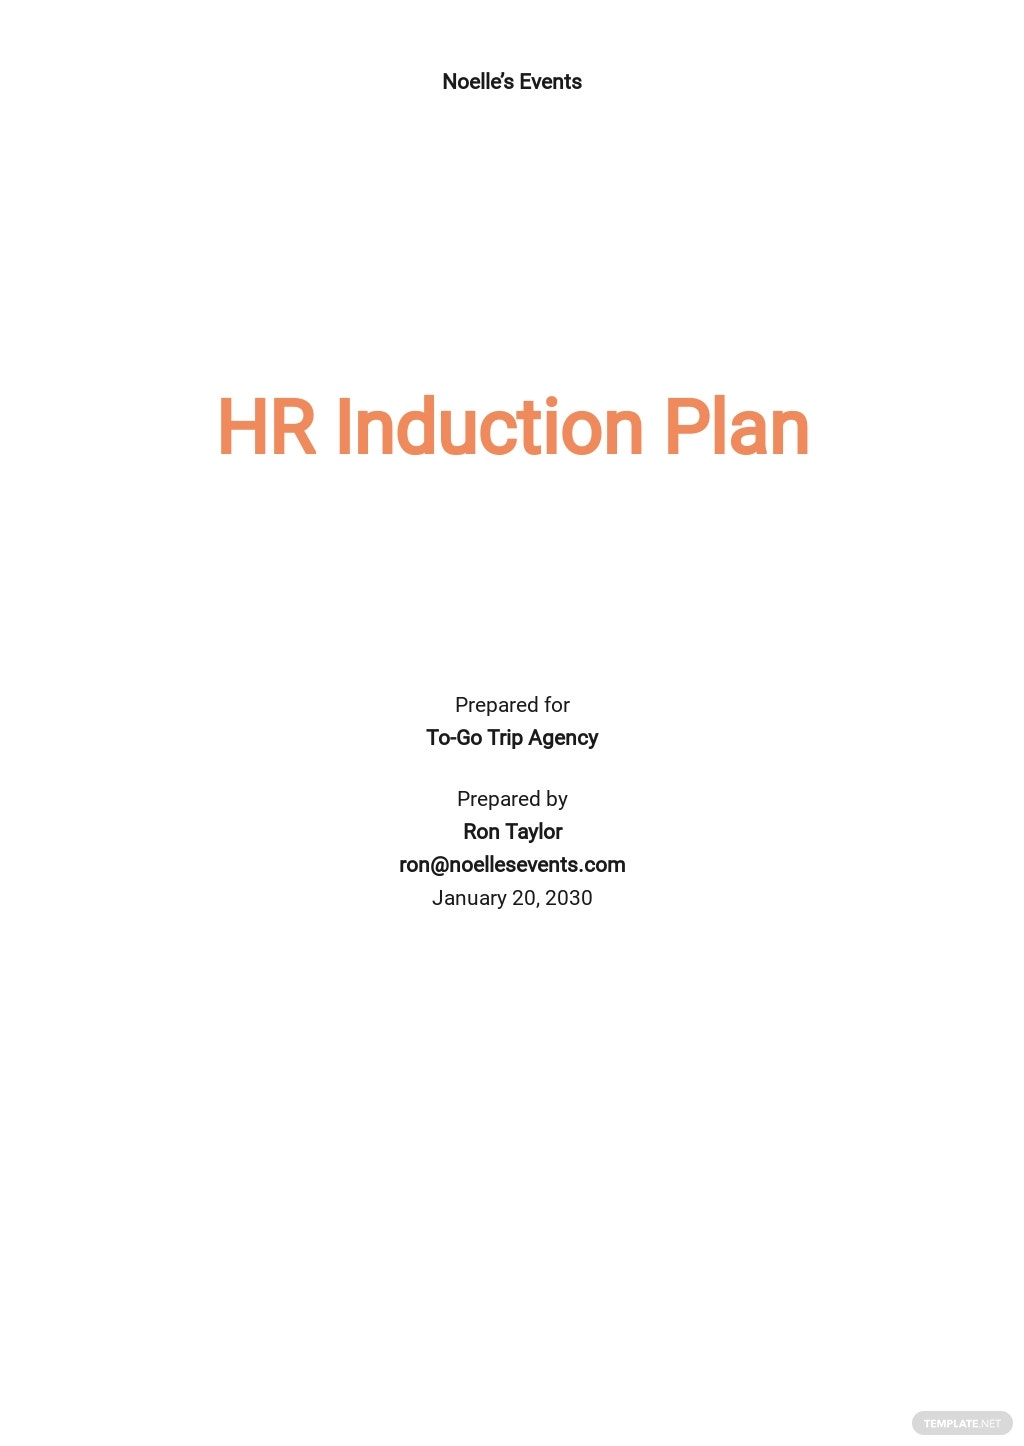 HR Induction Plan Template